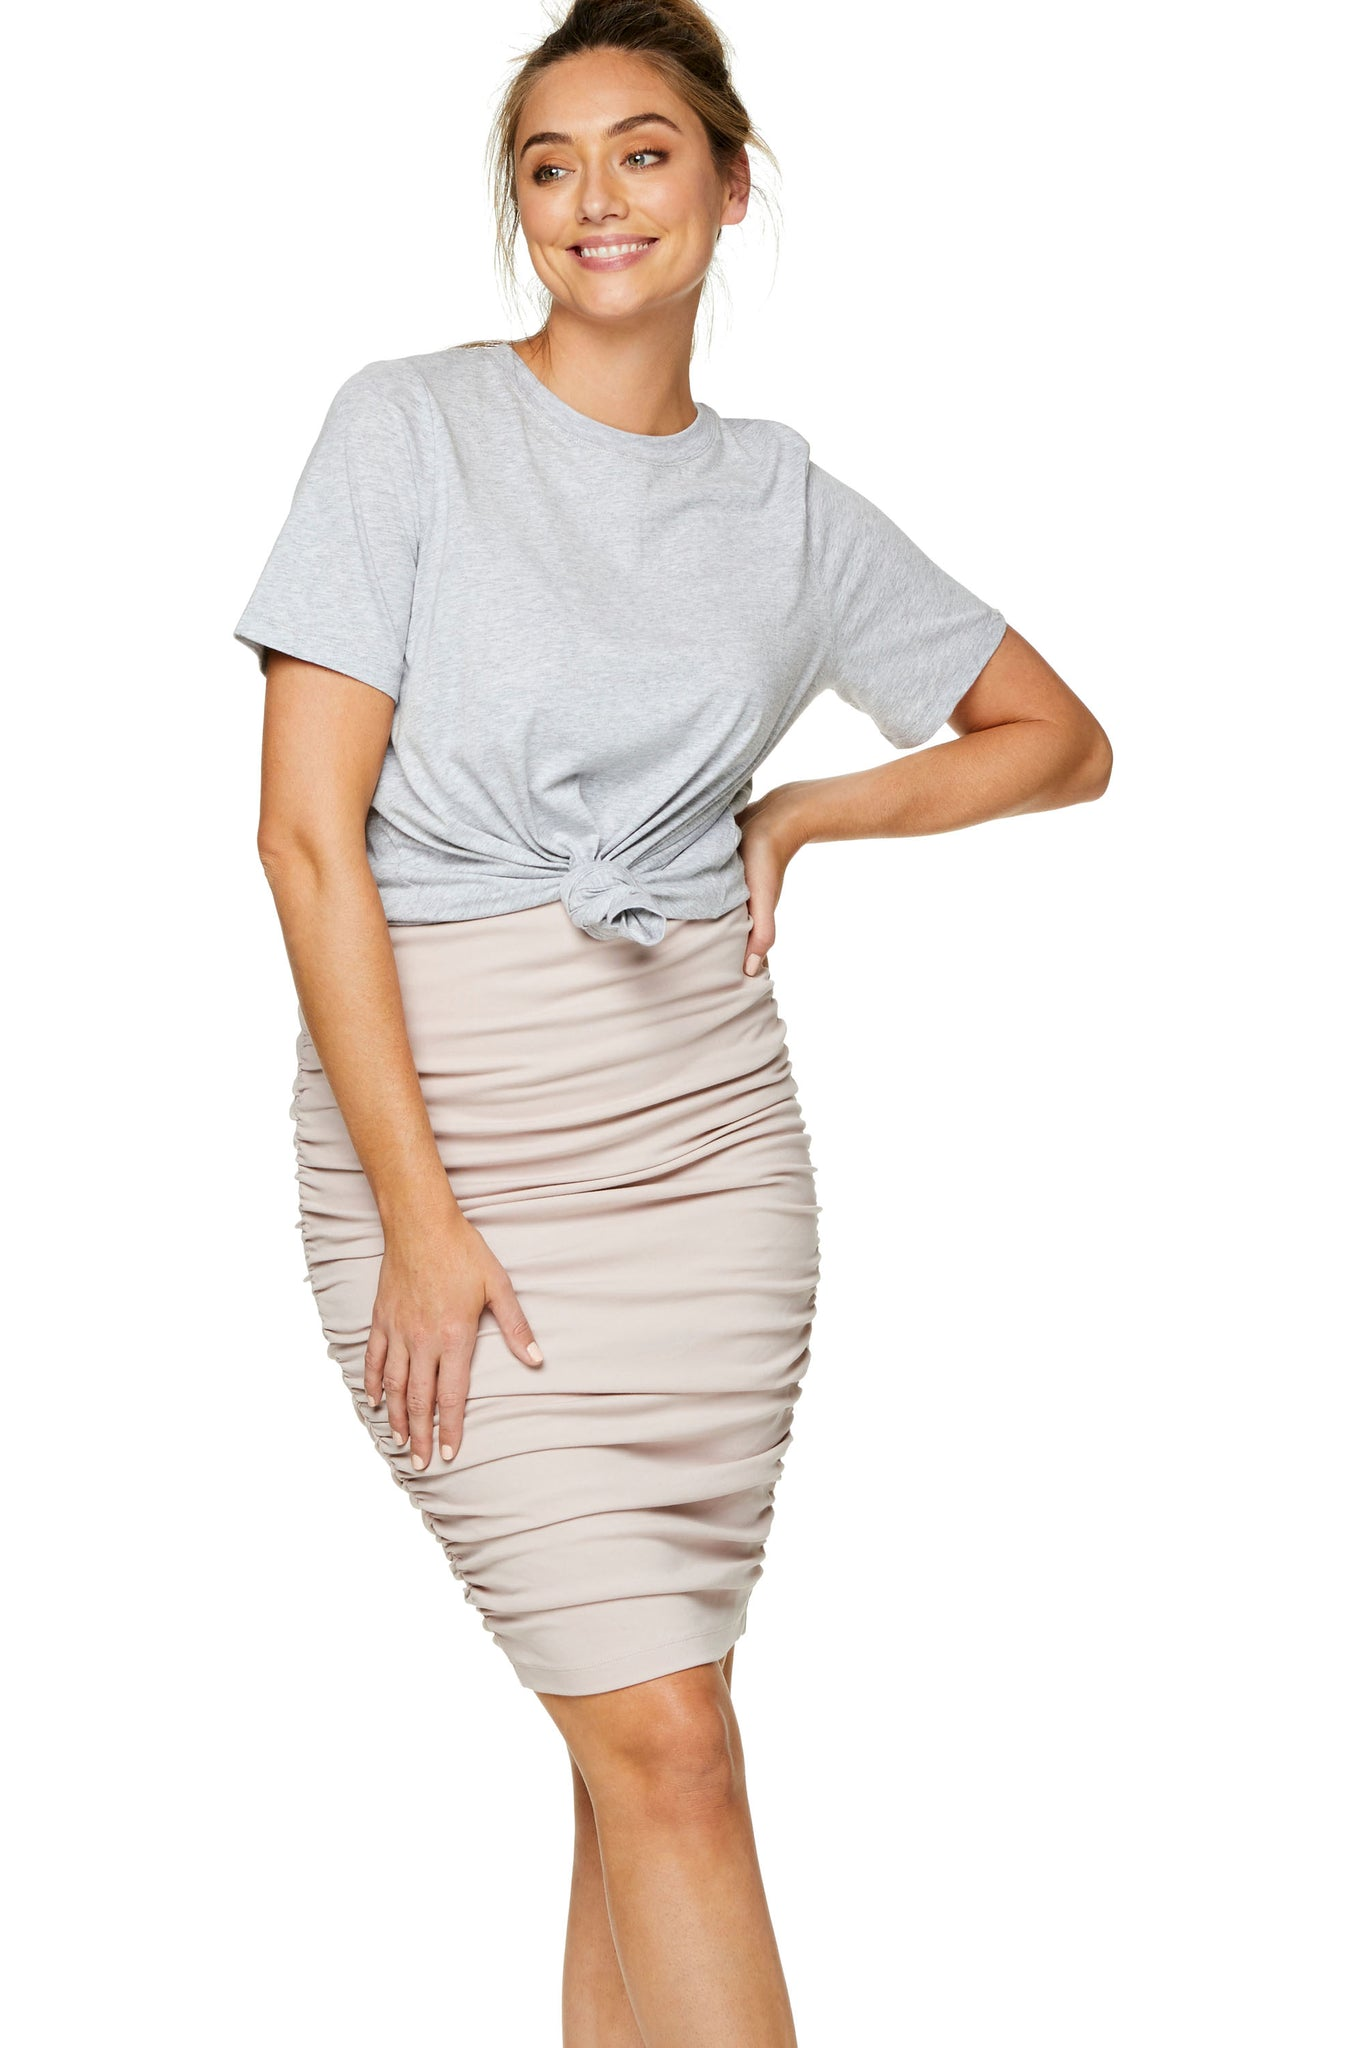 Ruched Maternity Skirt - Pink 6